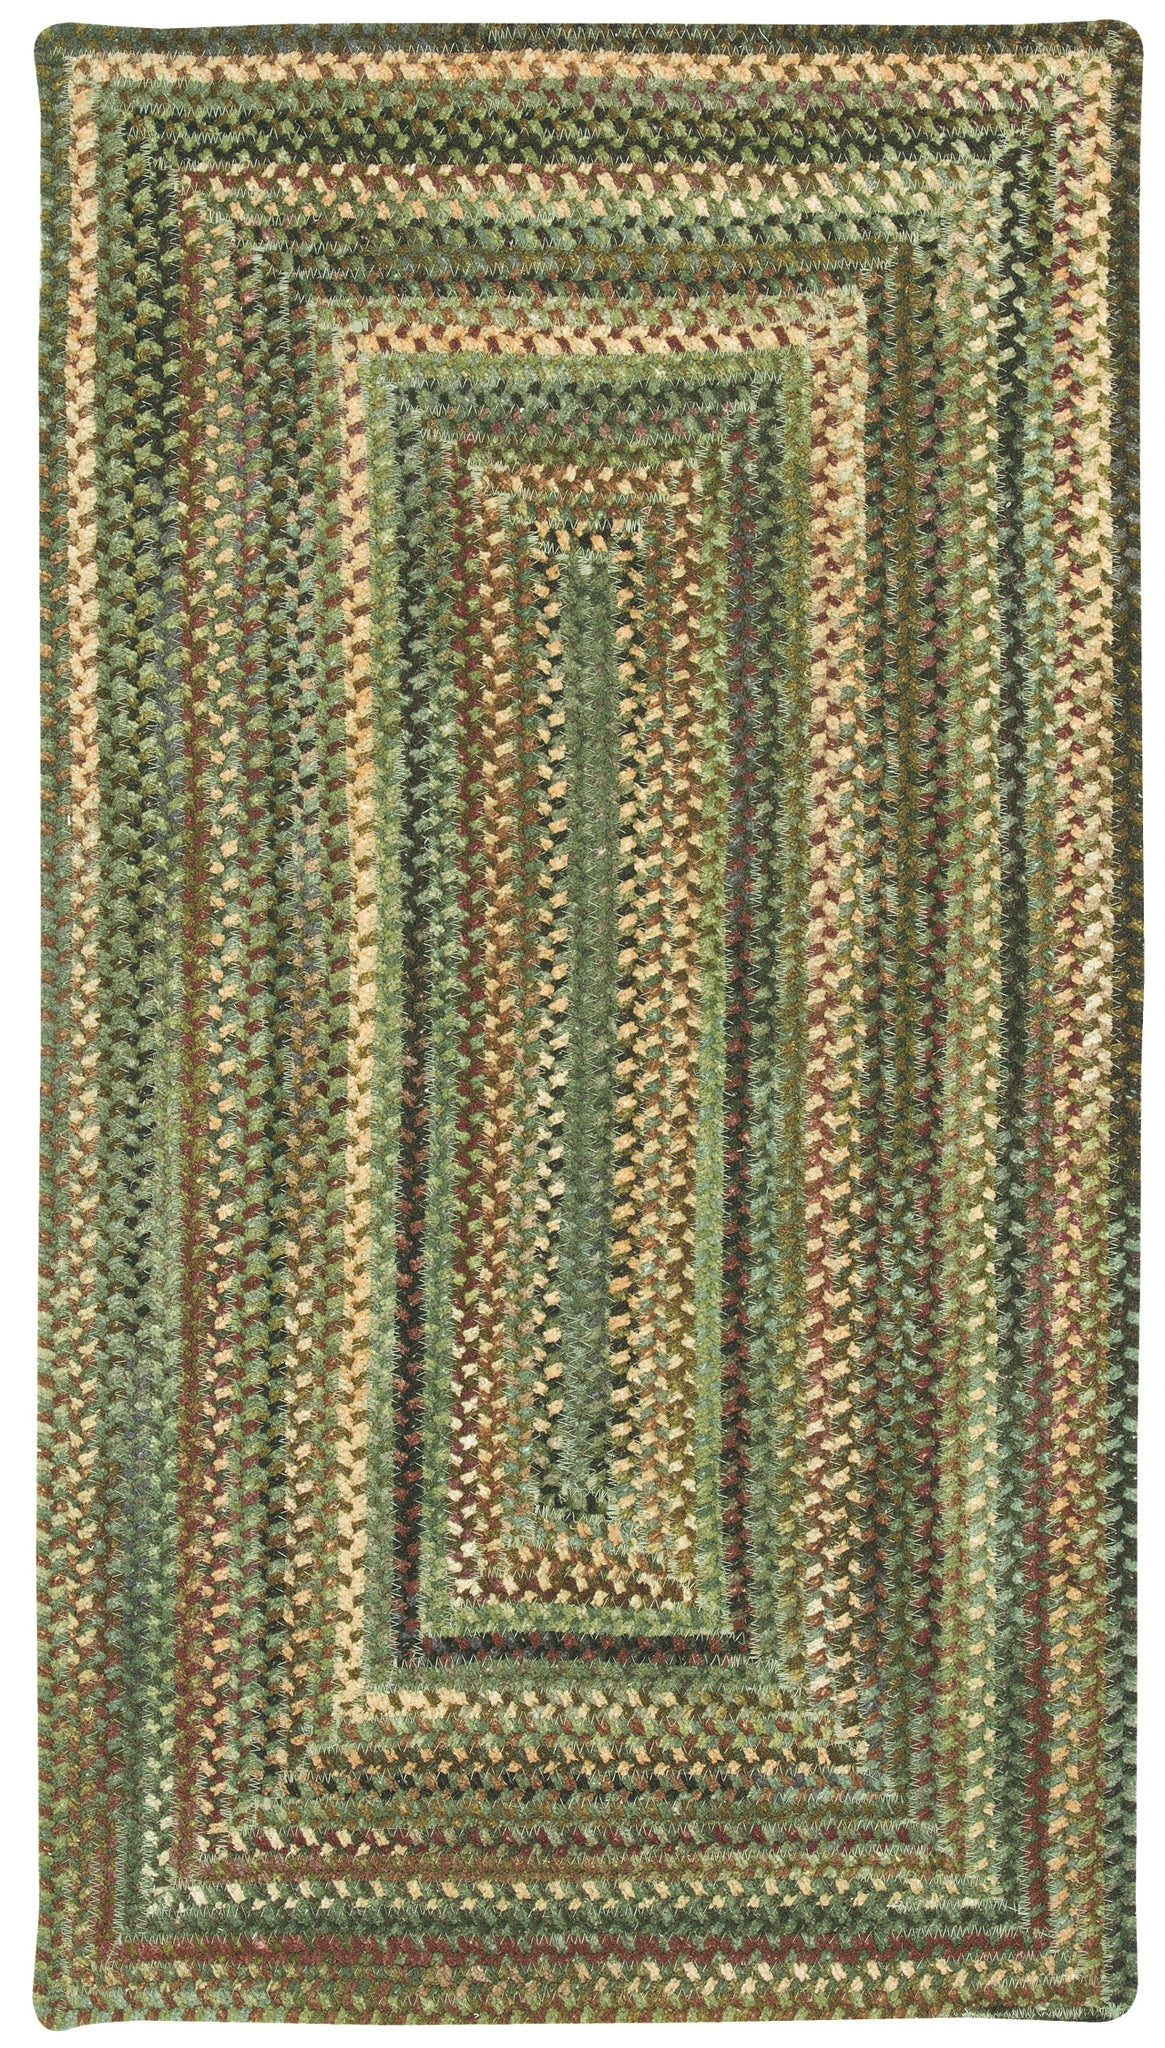 Capel Eaton 0442 Green 200 Area Rug main image